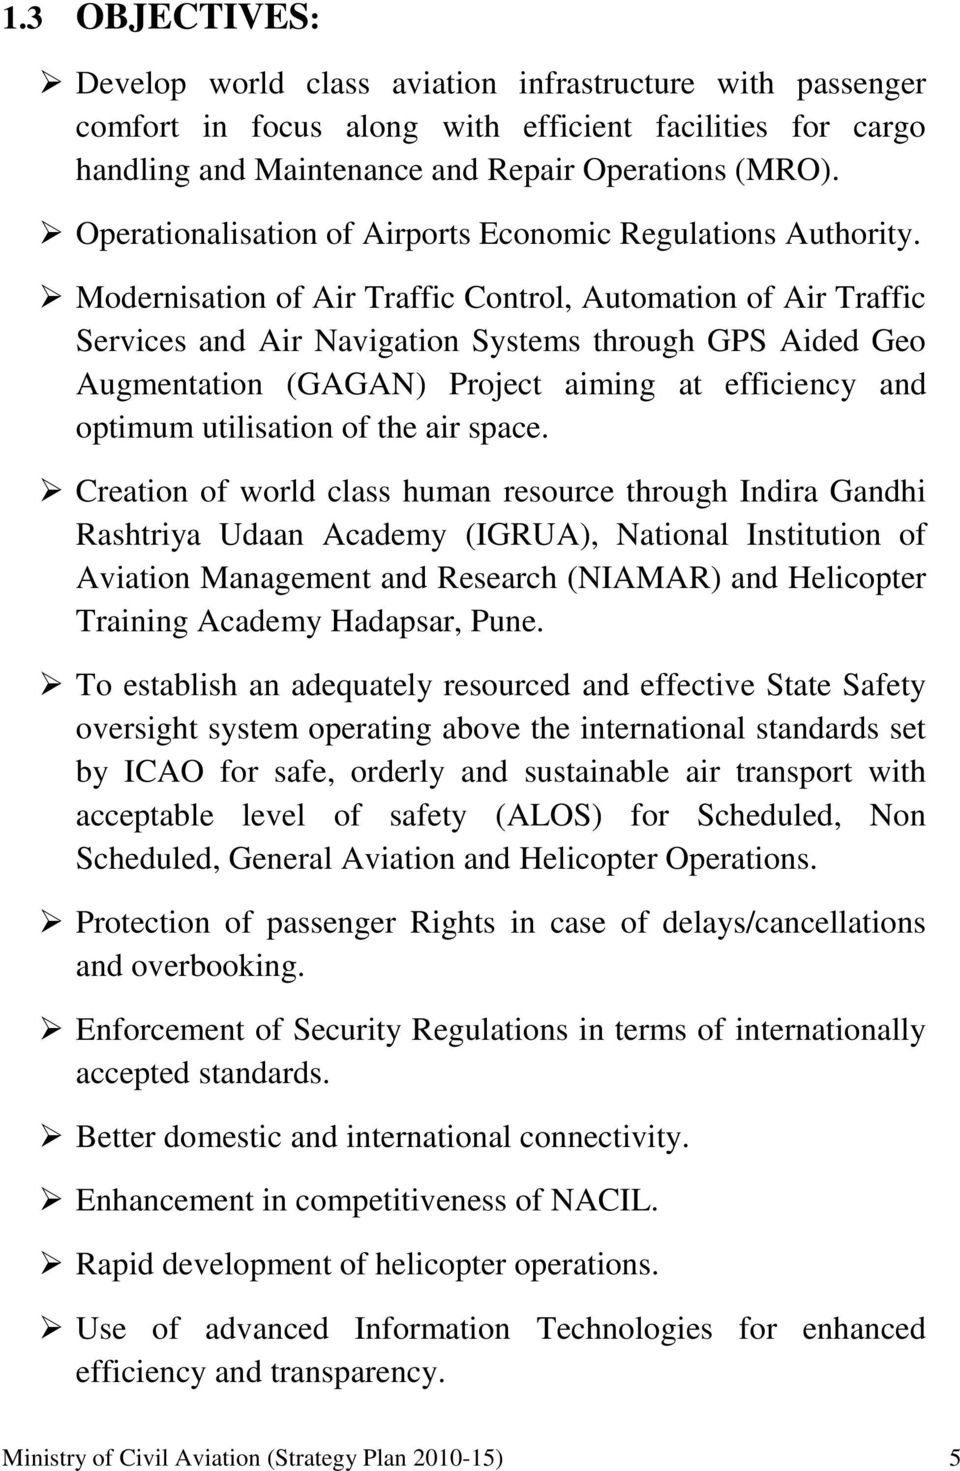 Modernisation of Air Traffic Control, Automation of Air Traffic Services and Air Navigation Systems through GPS Aided Geo Augmentation (GAGAN) Project aiming at efficiency and optimum utilisation of